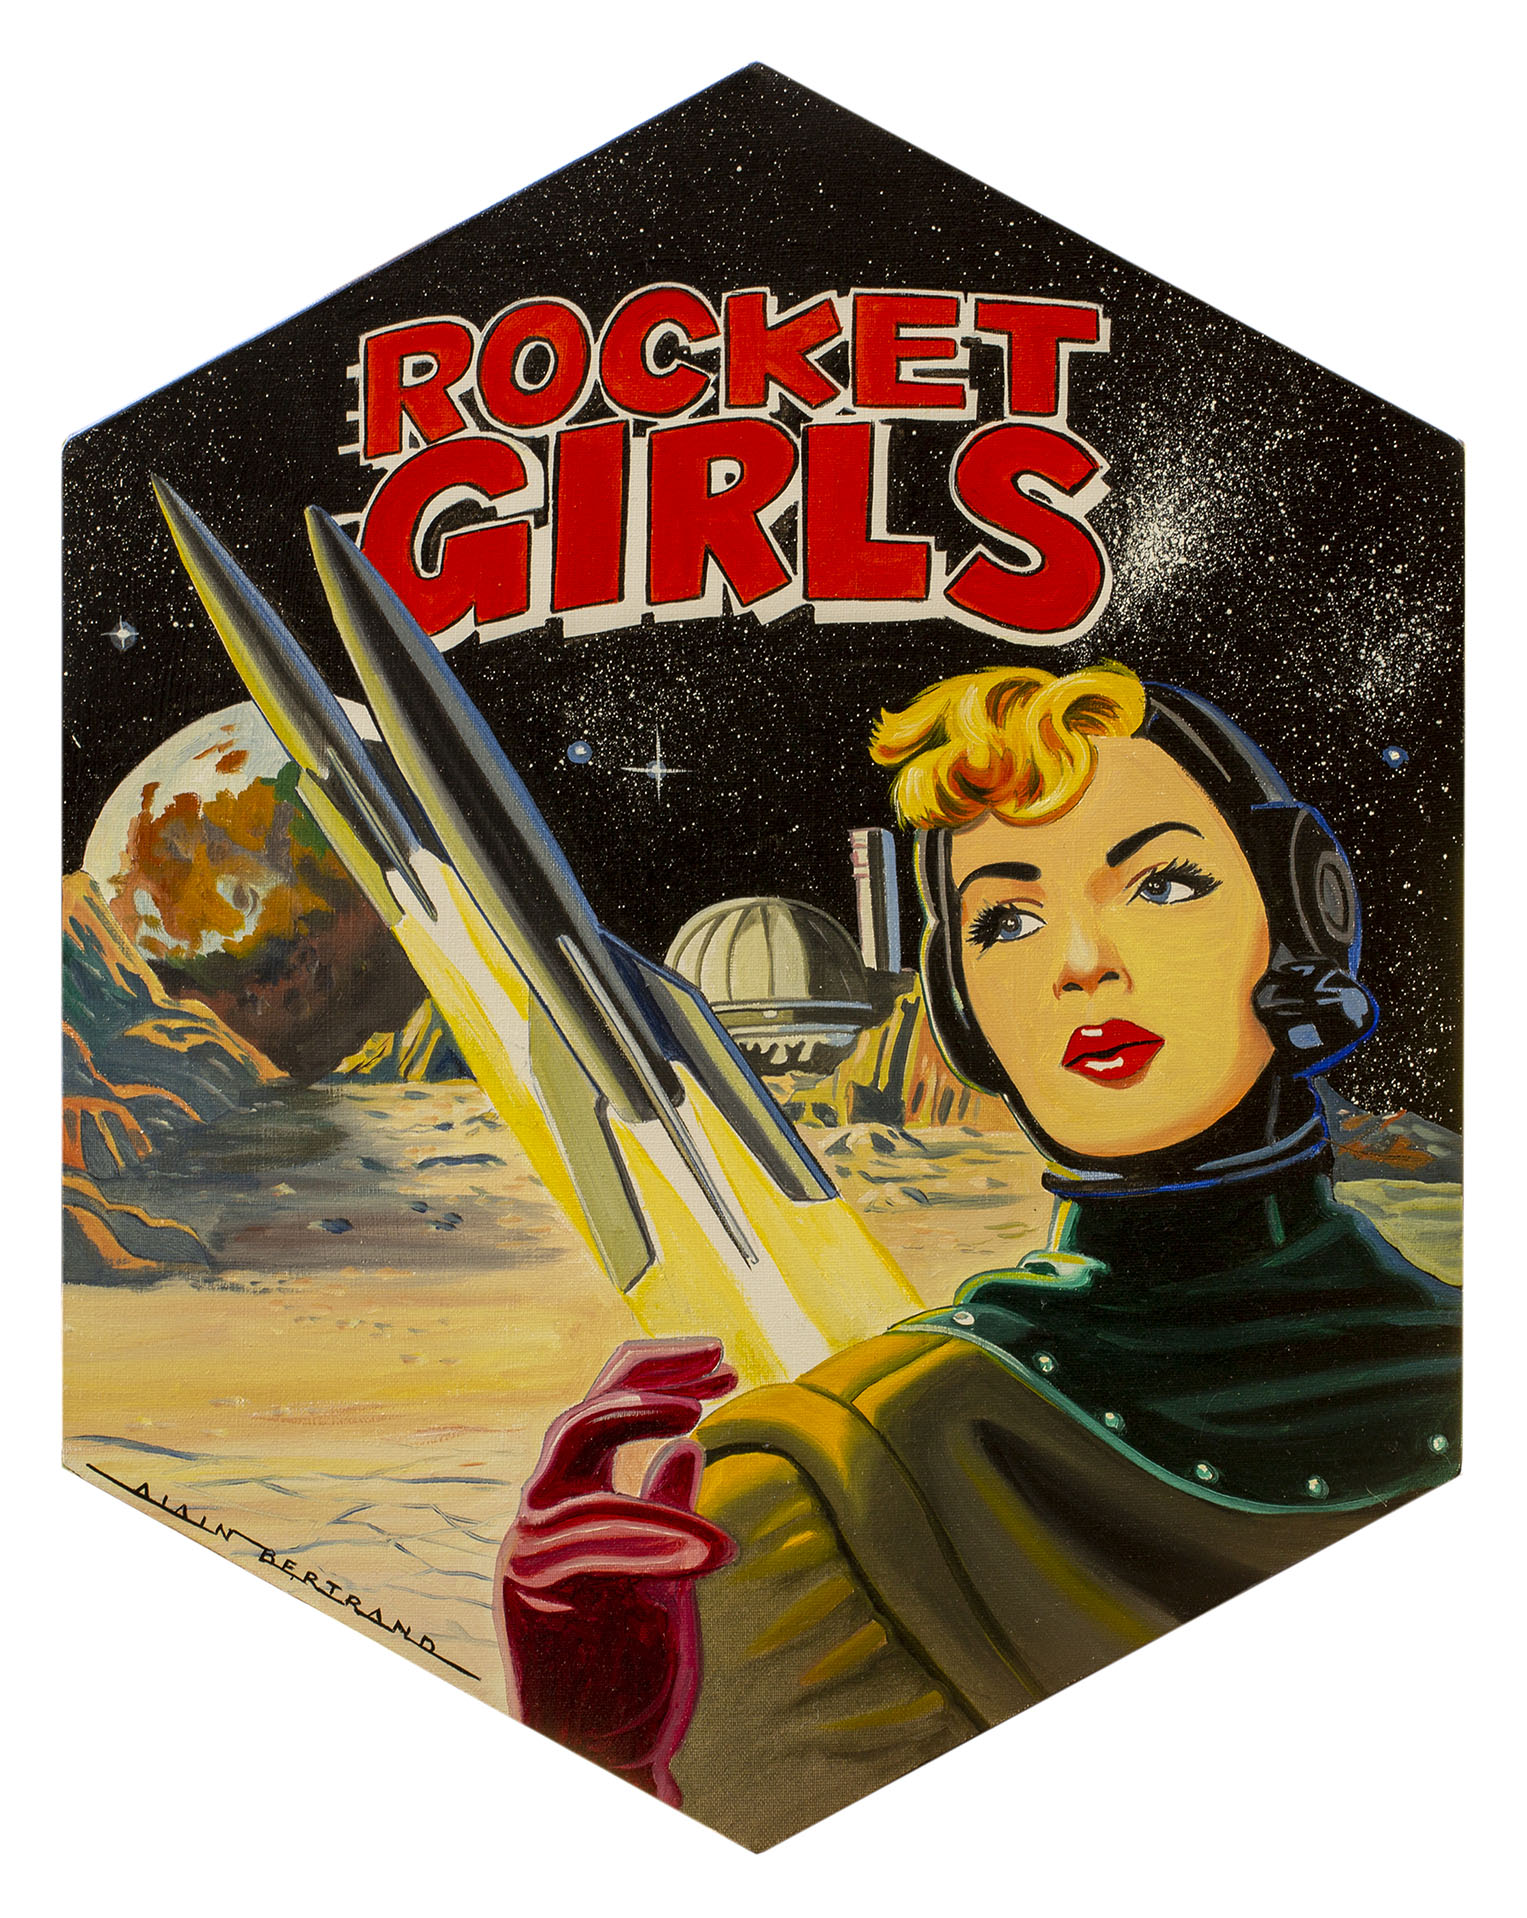 ROCKET GIRLS 60X45